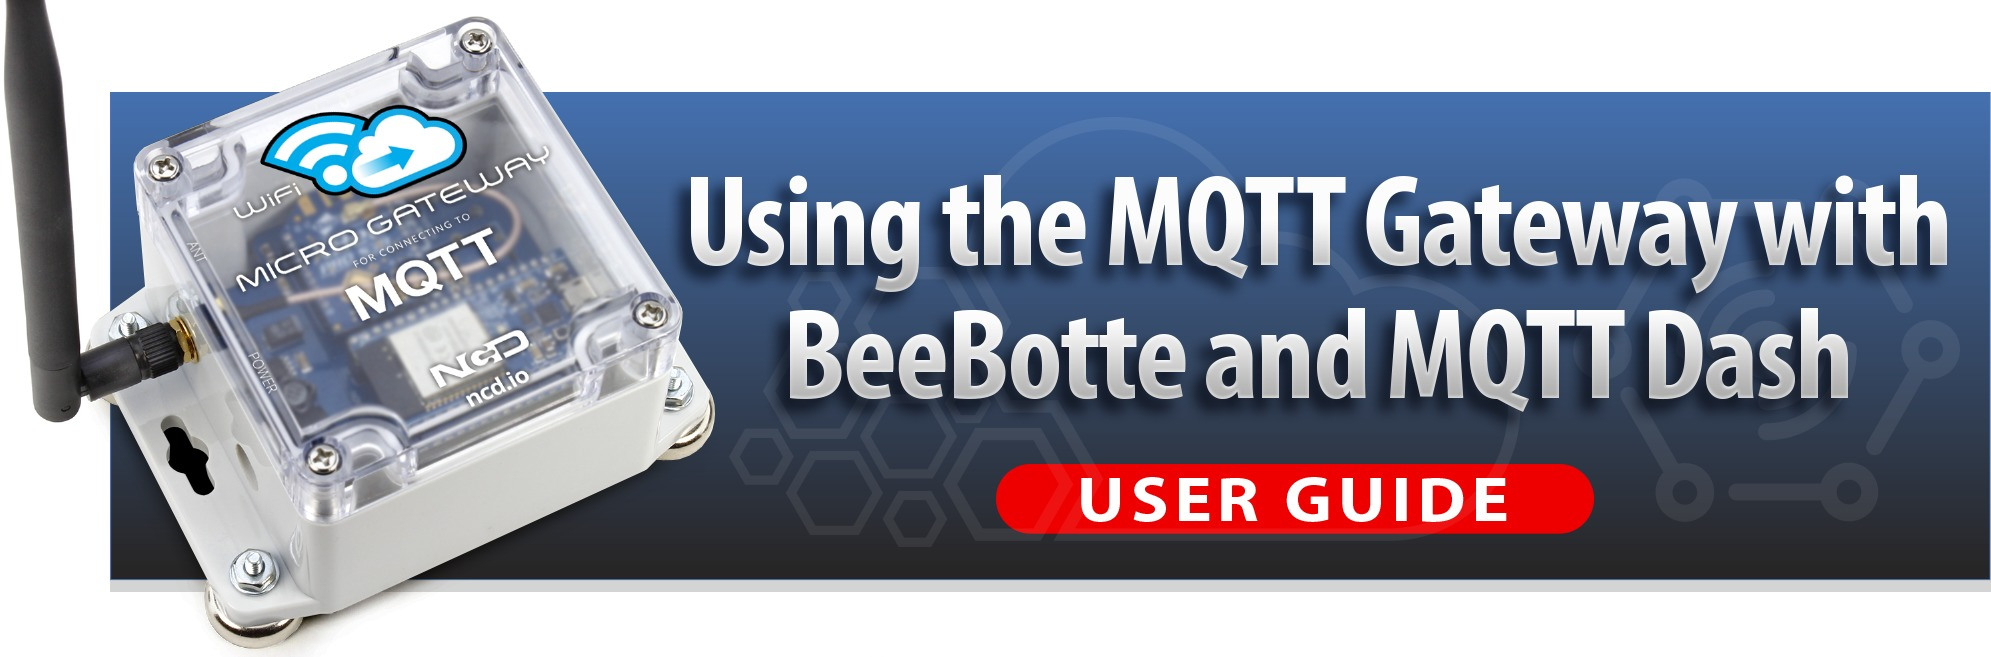 Using the MQTT Gateway with BeeBotte and displaying info on MQTT Dash